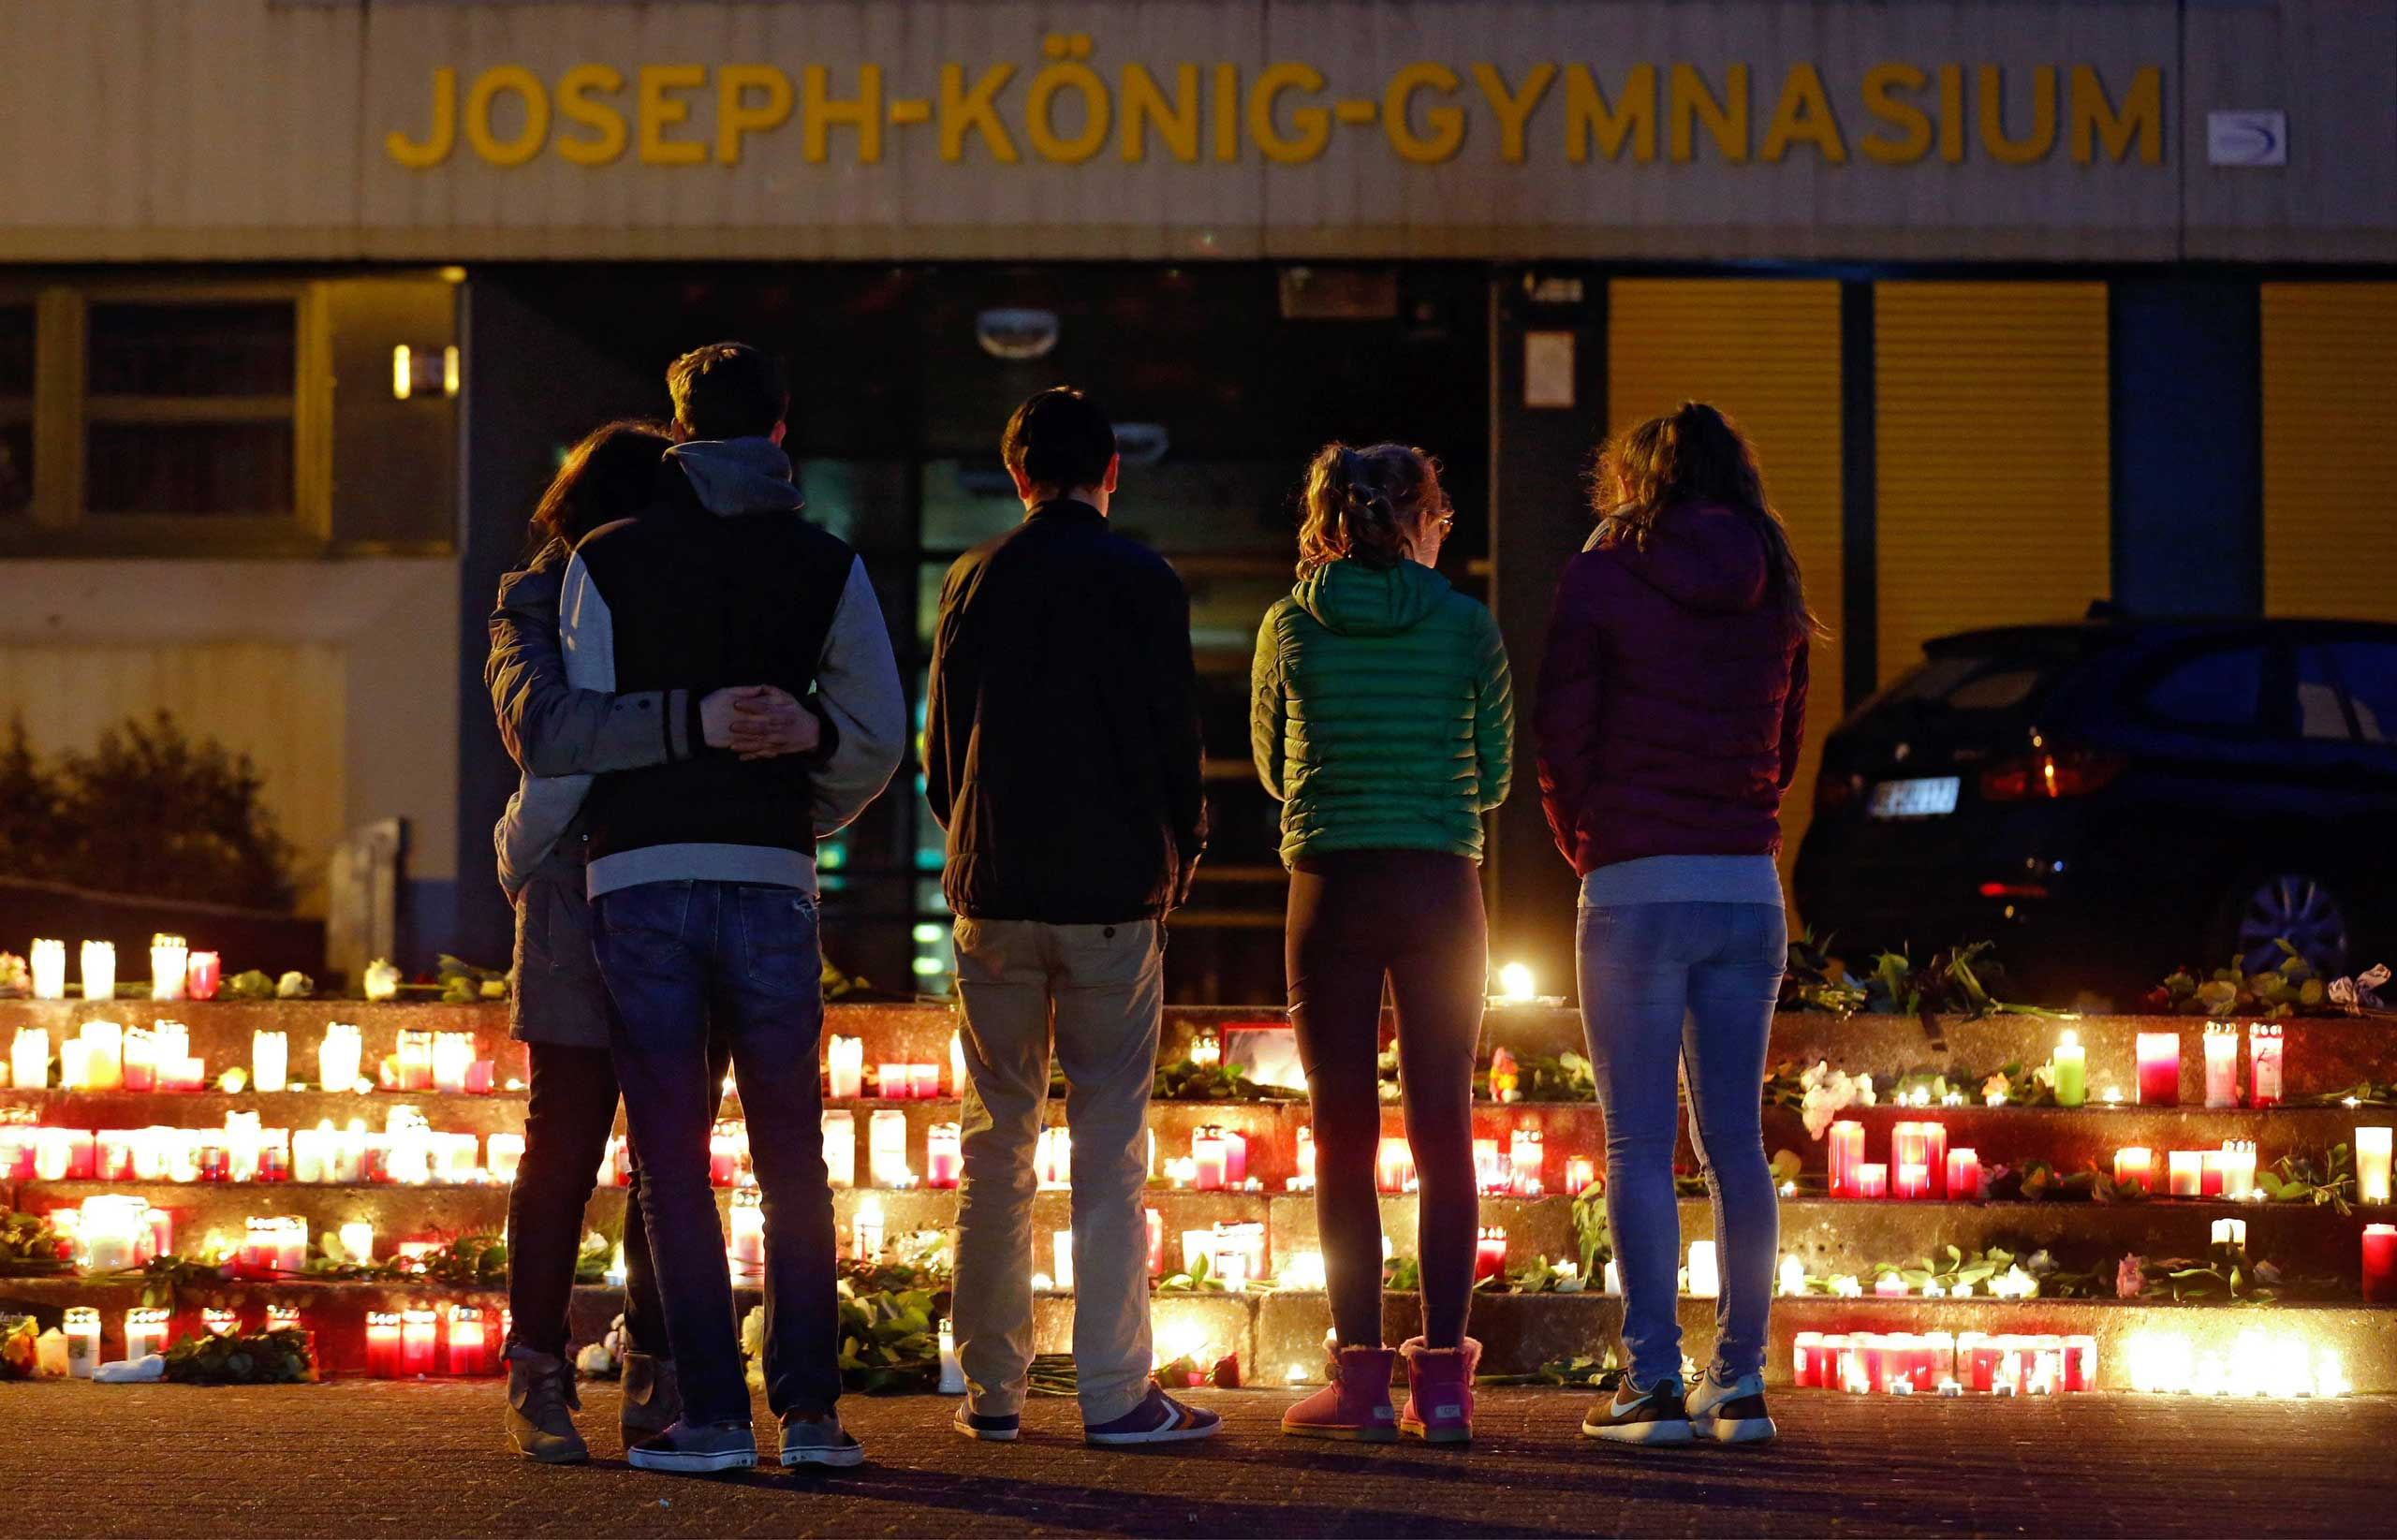 People stand in front of candles and flowers placed in front of the Joseph-Koenig-Gymnasium in Haltern, Germany, March 24, 2015.